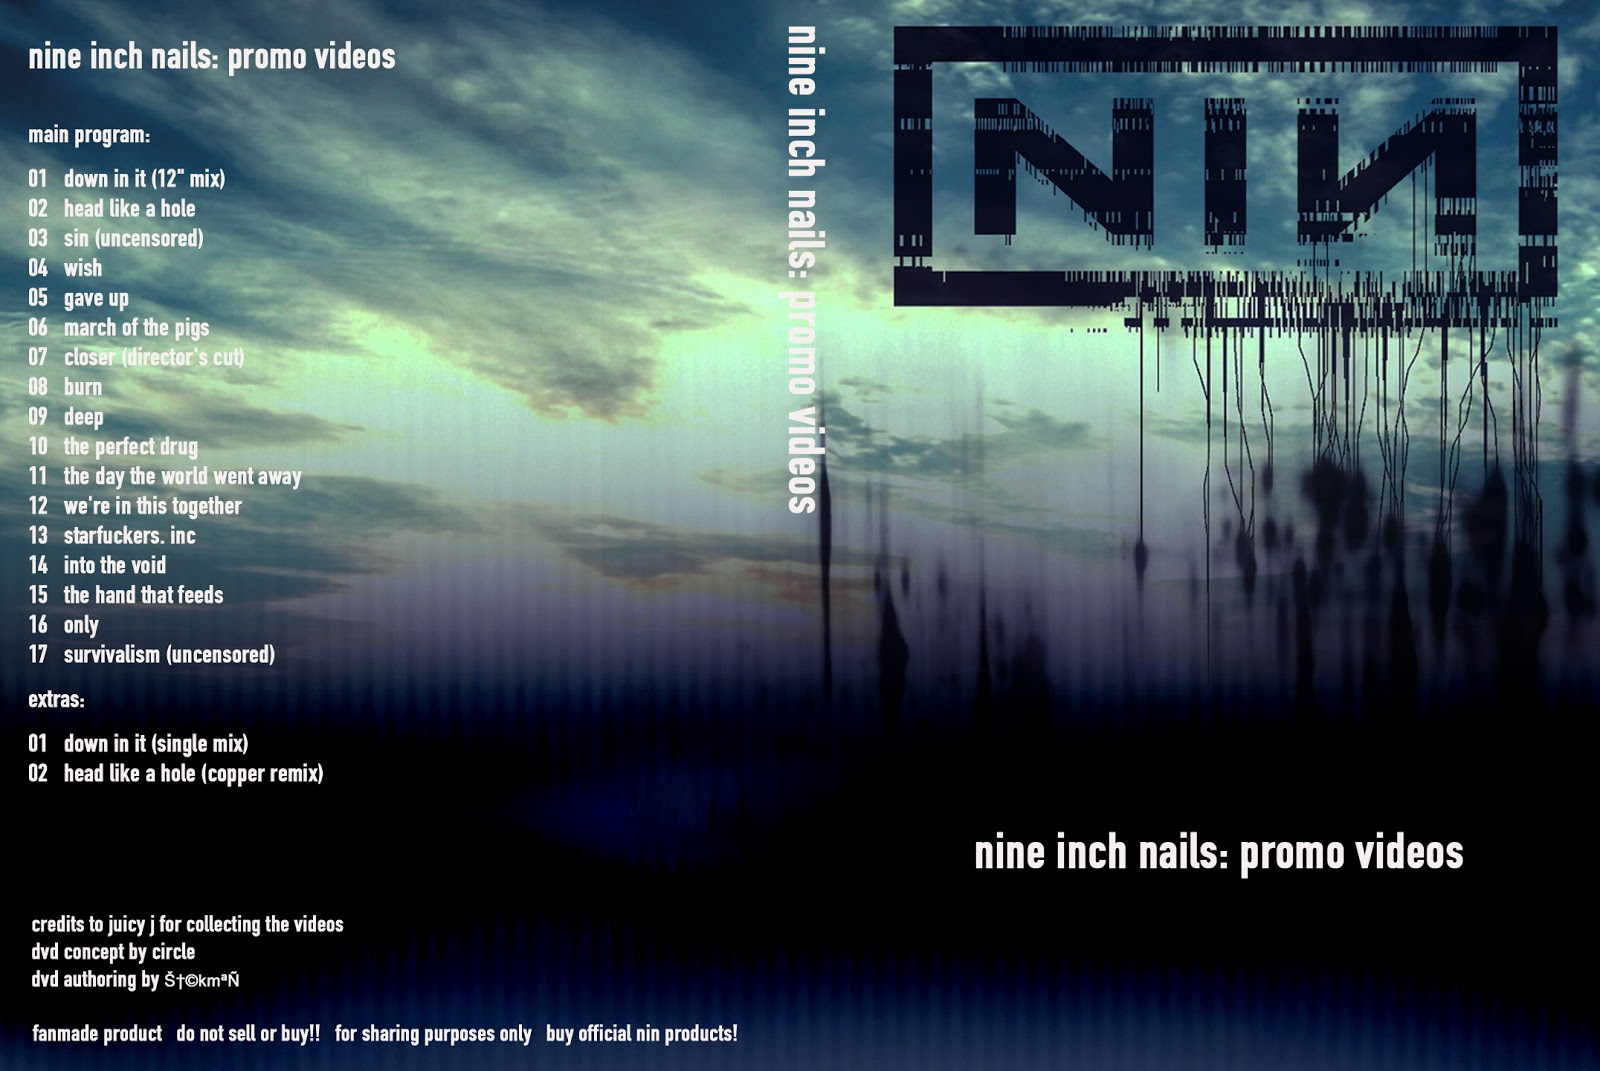 Nine Inch Nails Promo Videos Dvd